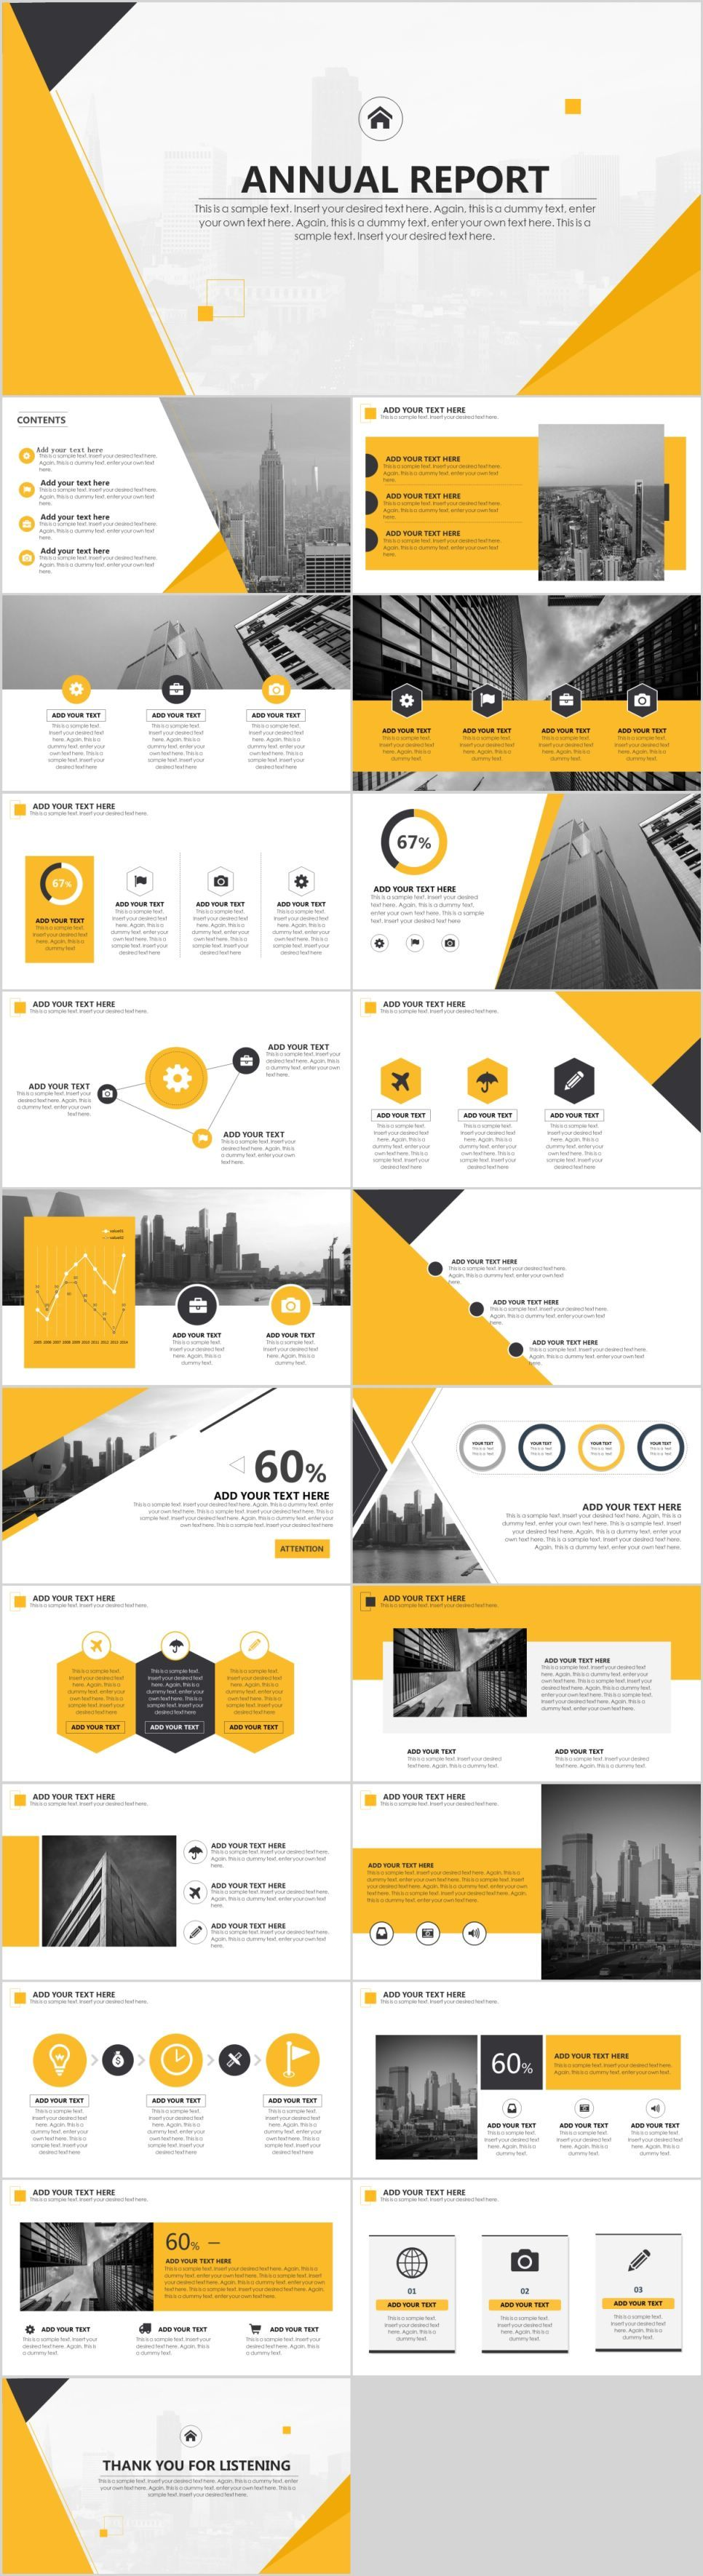 Yellow annual report PowerPoint template